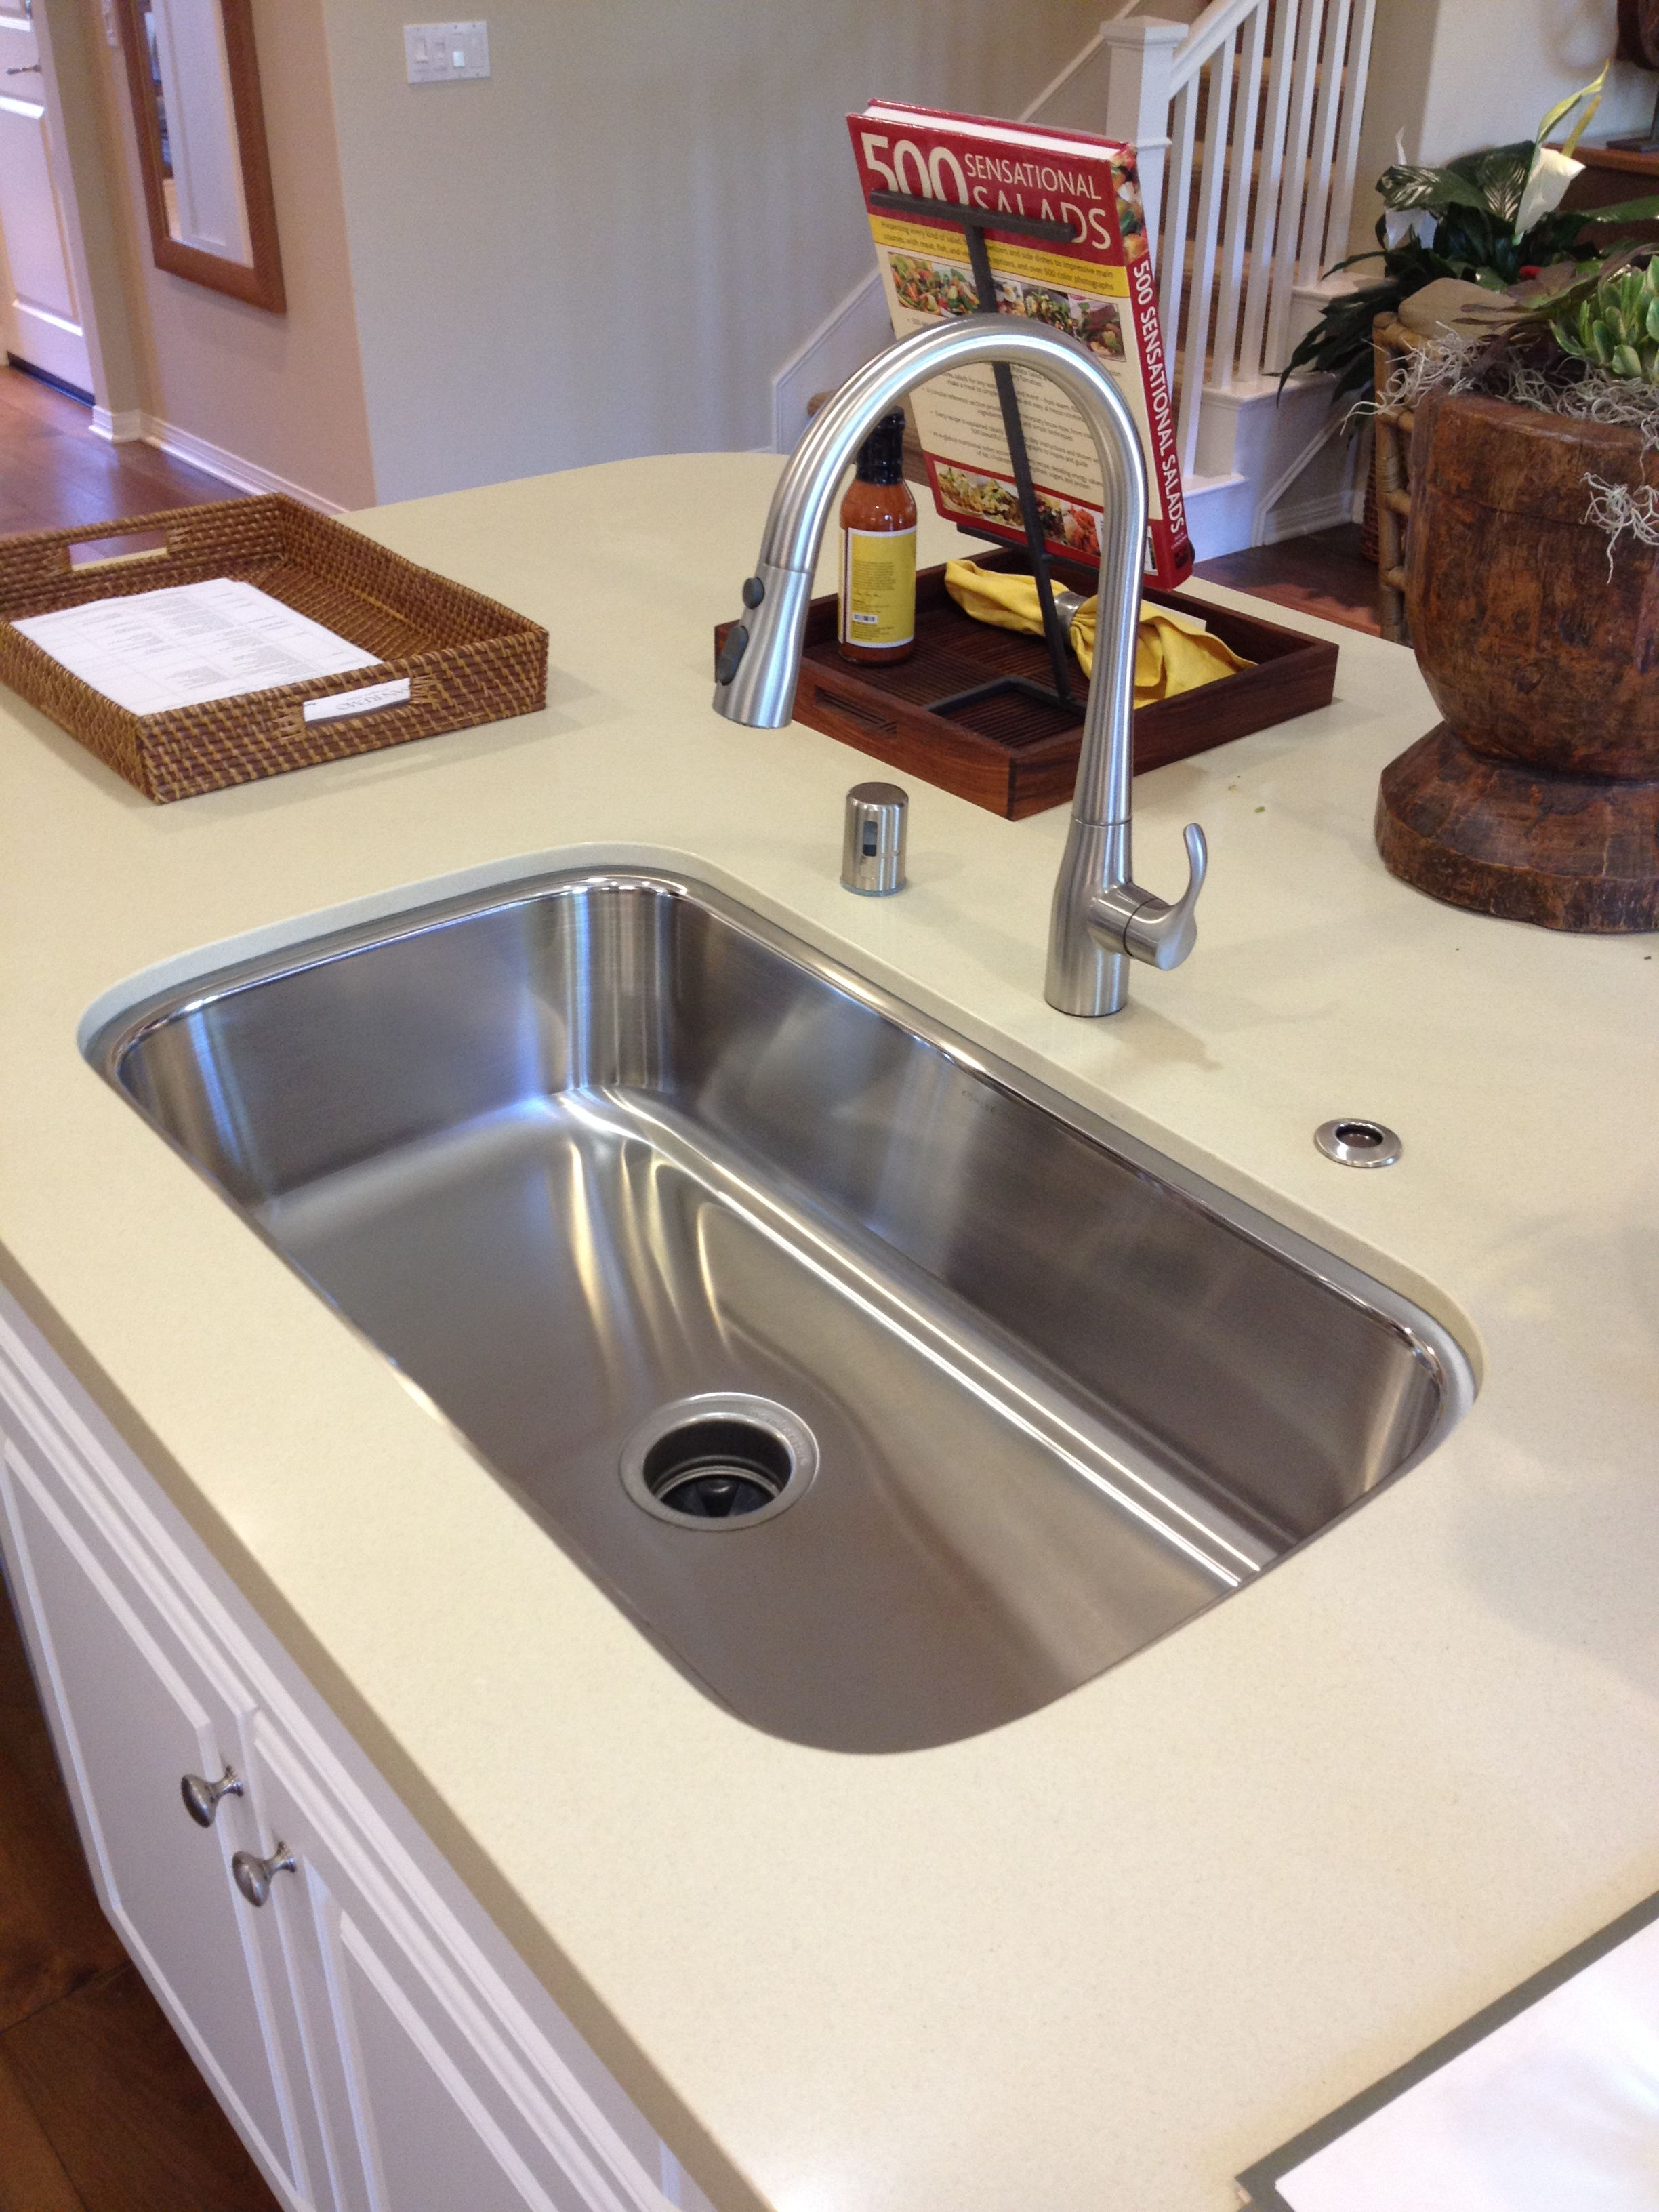 Giant stainless steel single-tub sink. You want undermount - no seam ...